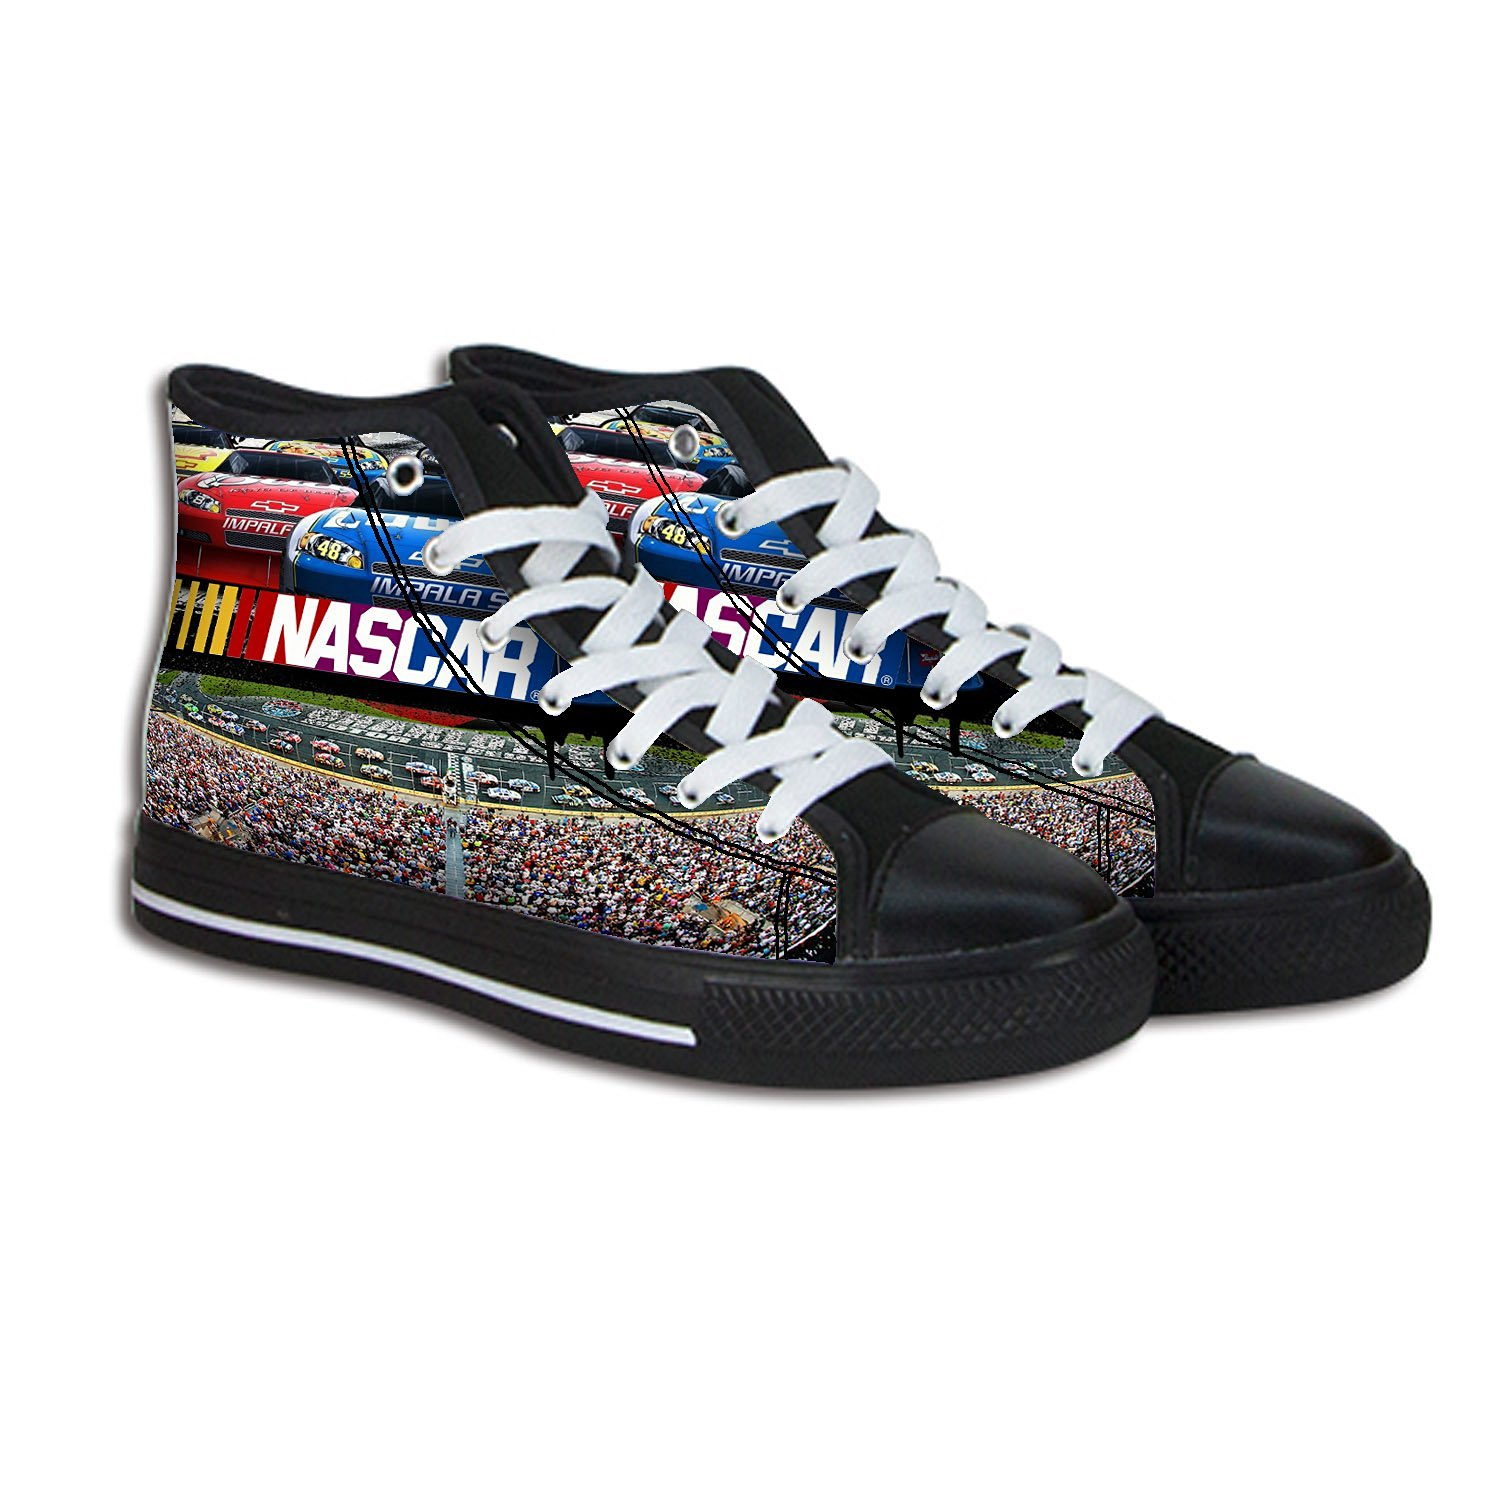 Cheap Simpson High Top Racing Shoes find Simpson High Top Racing